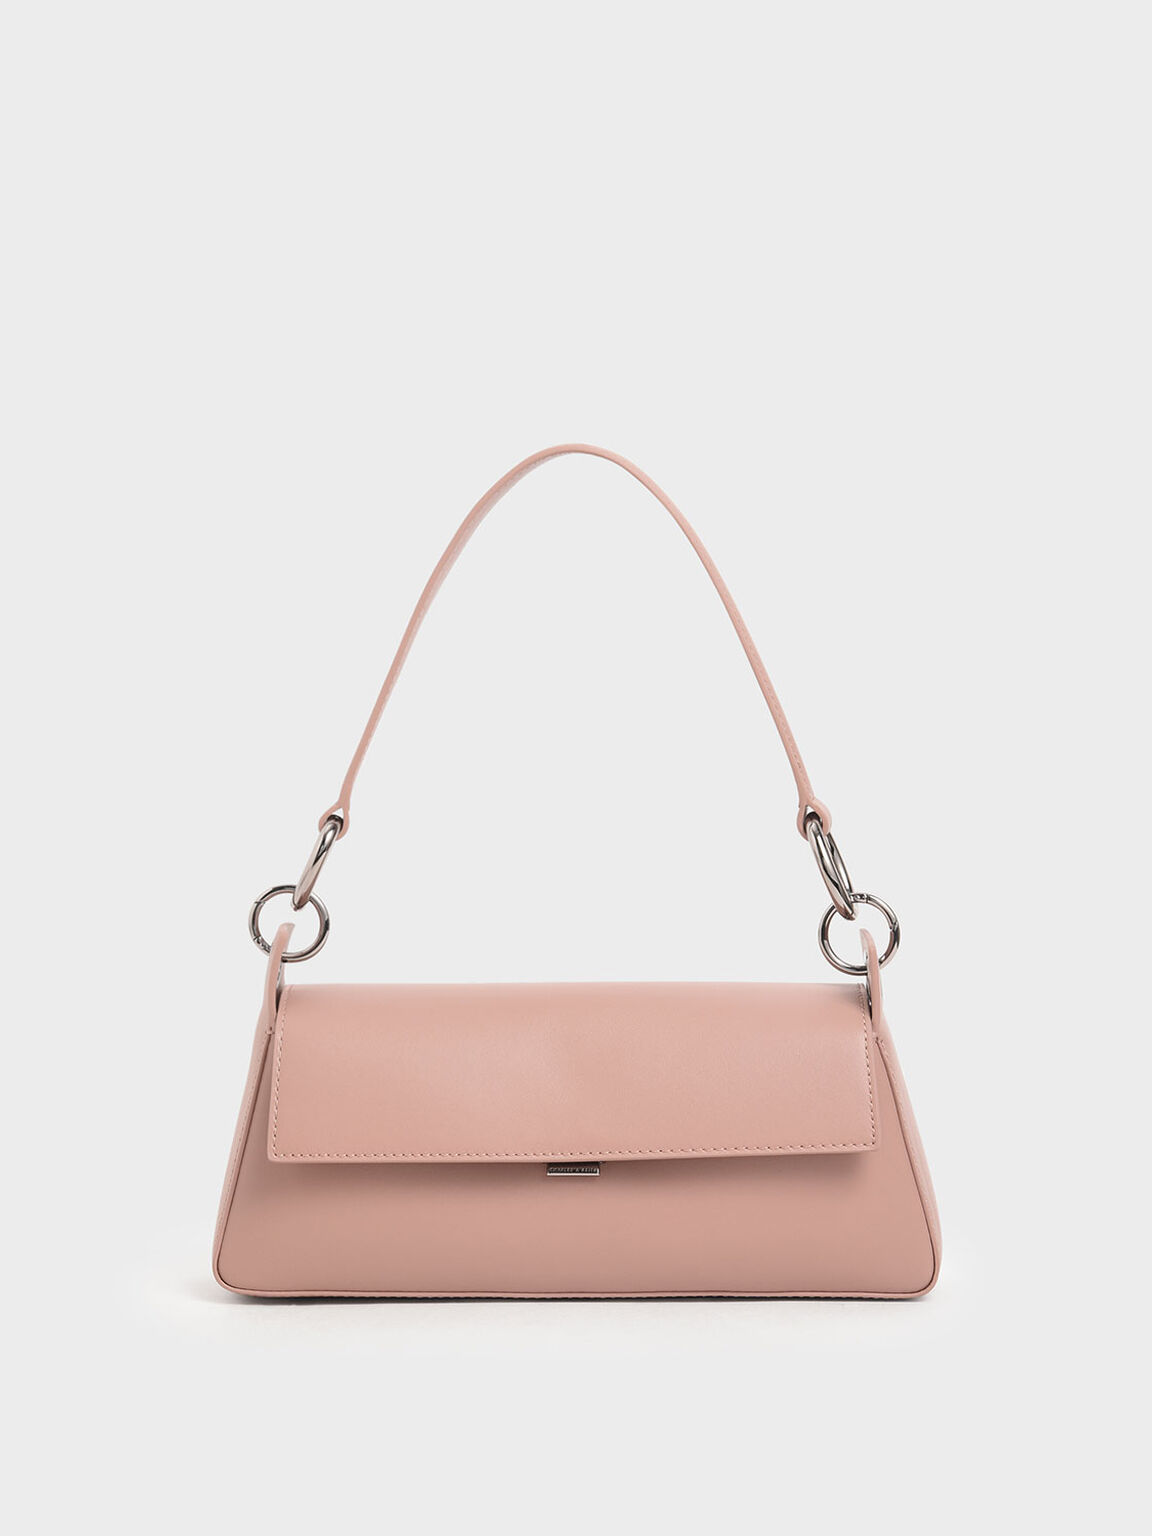 Leather Shoulder Bag, Blush, hi-res